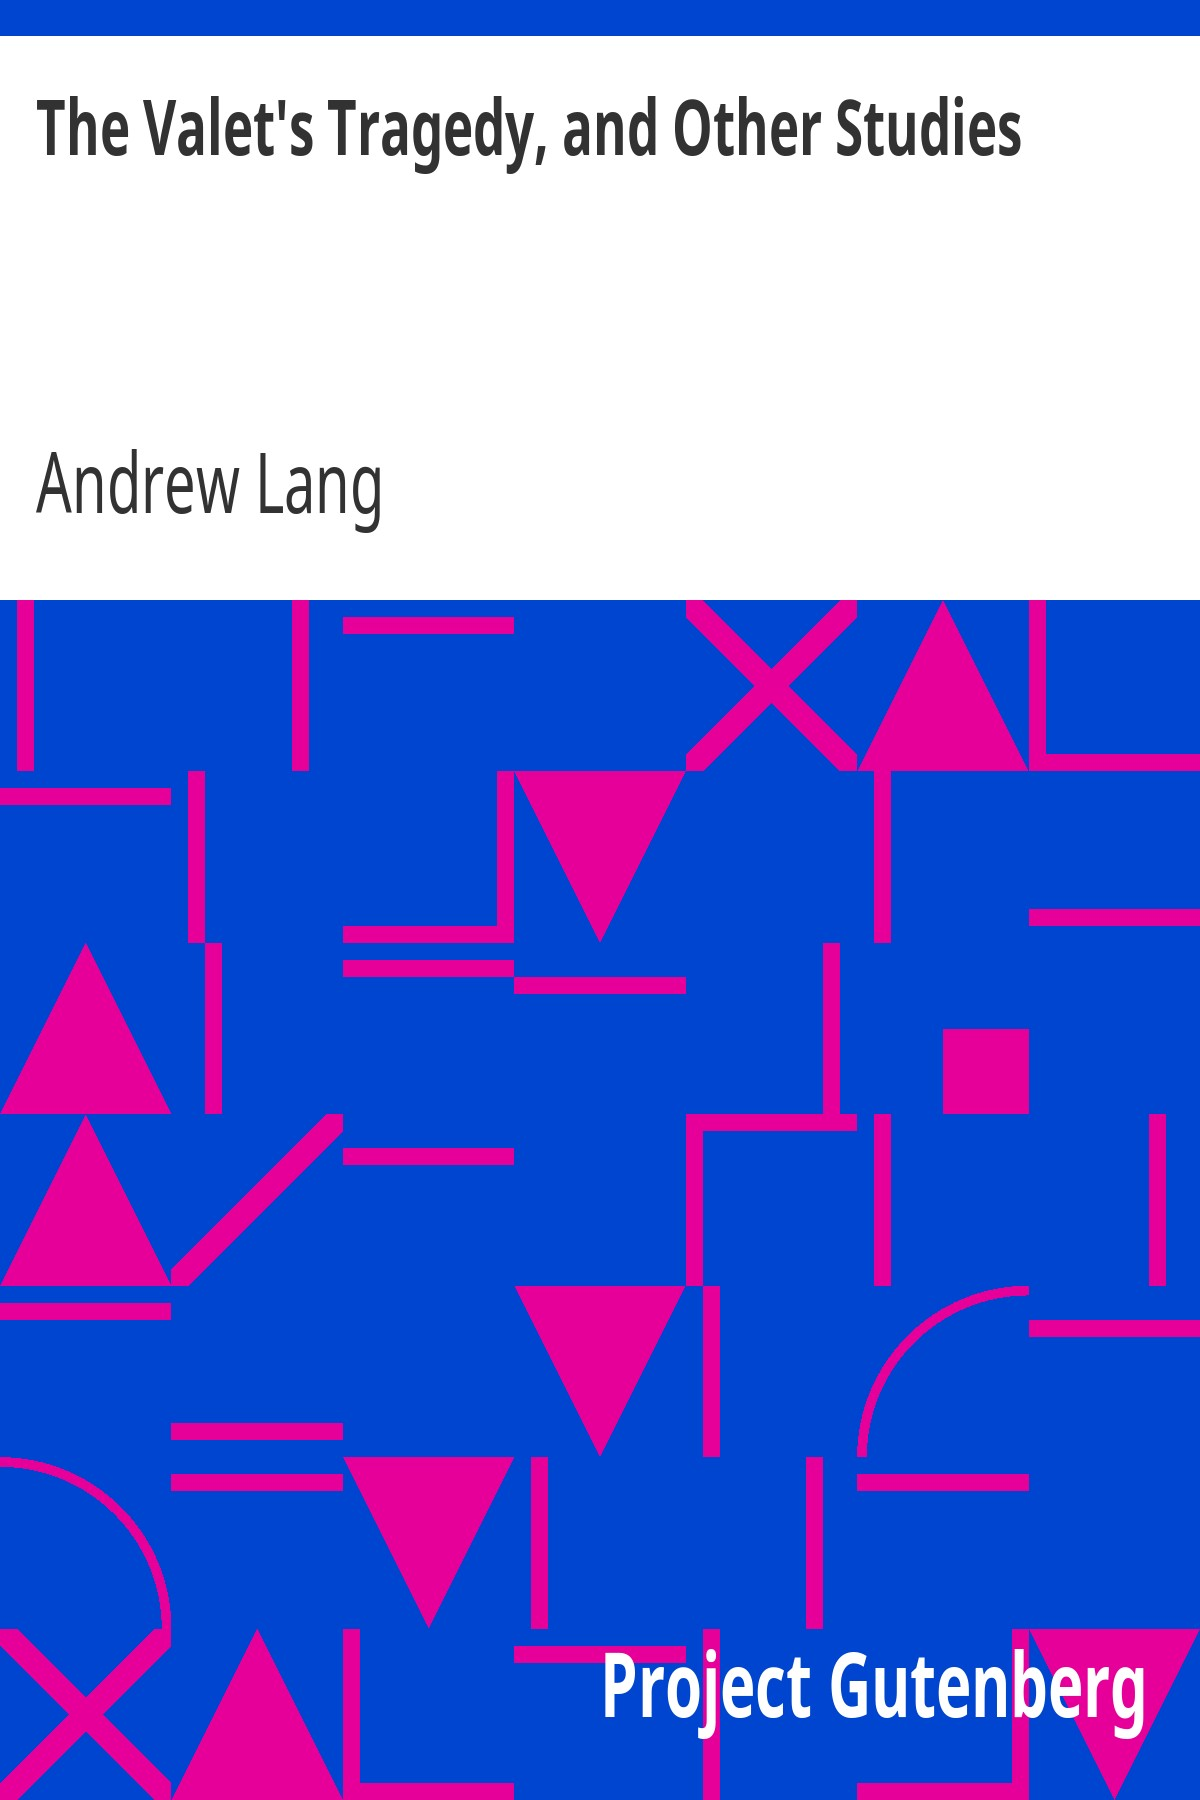 Andrew Lang The Valet's Tragedy, and Other Studies